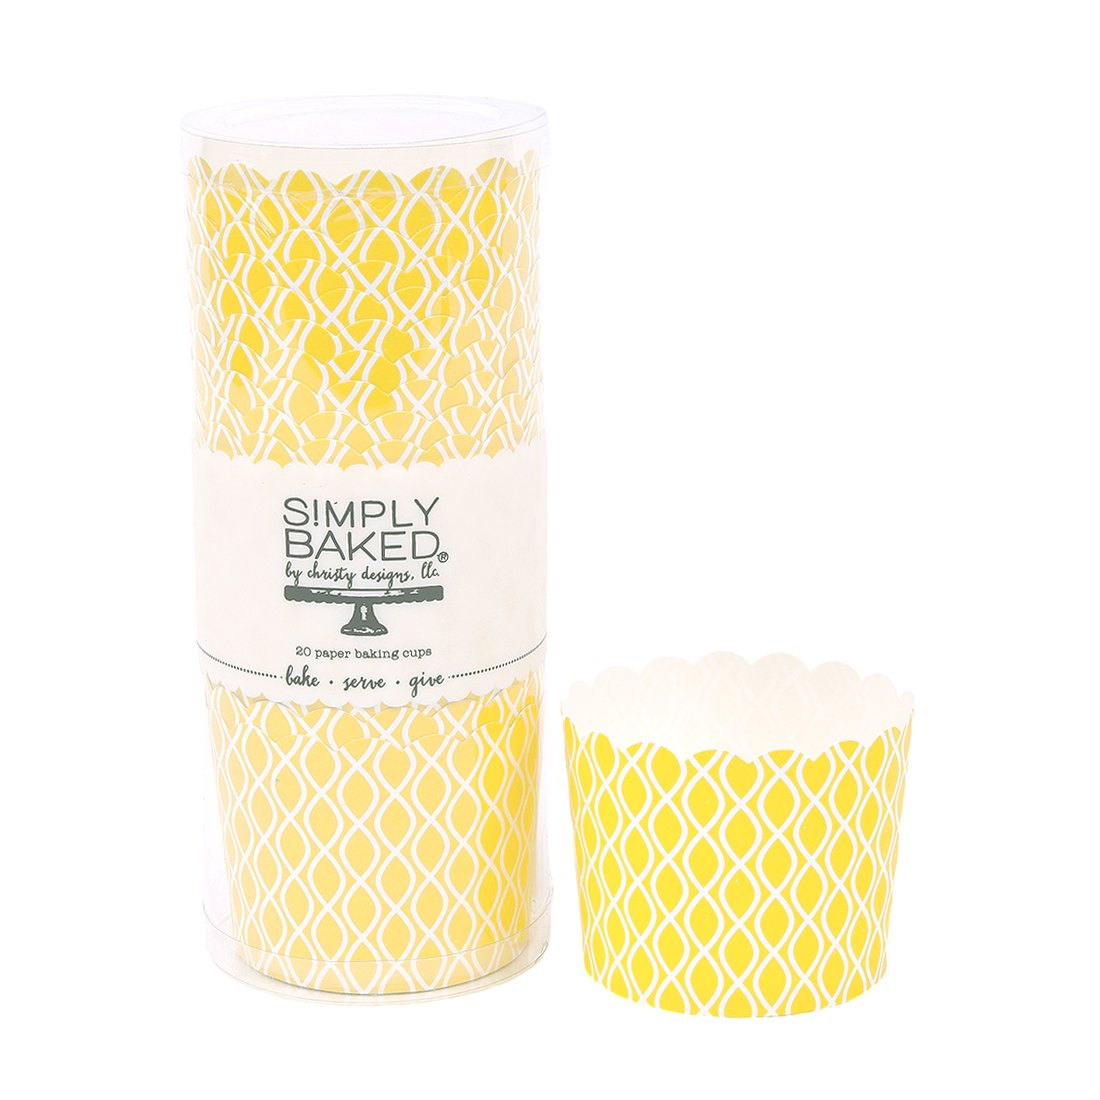 Simply Baked Large Paper Baking Cup, Yellow Wave, 500-Pack, Disposable & Oven-safe